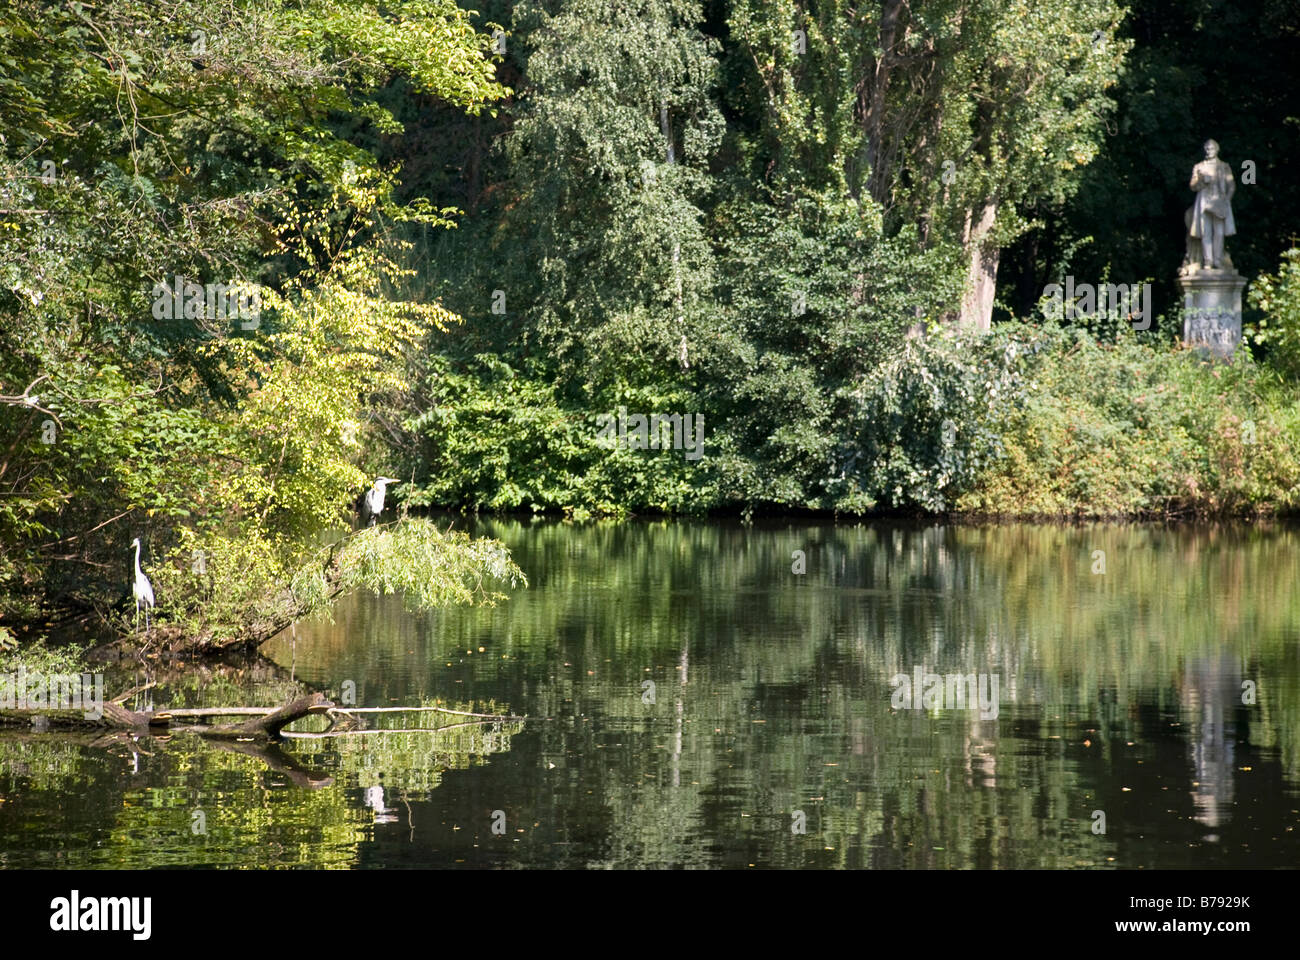 Germany, Berlin, Tiergarten, Lake, sculpture in the background - Stock Image